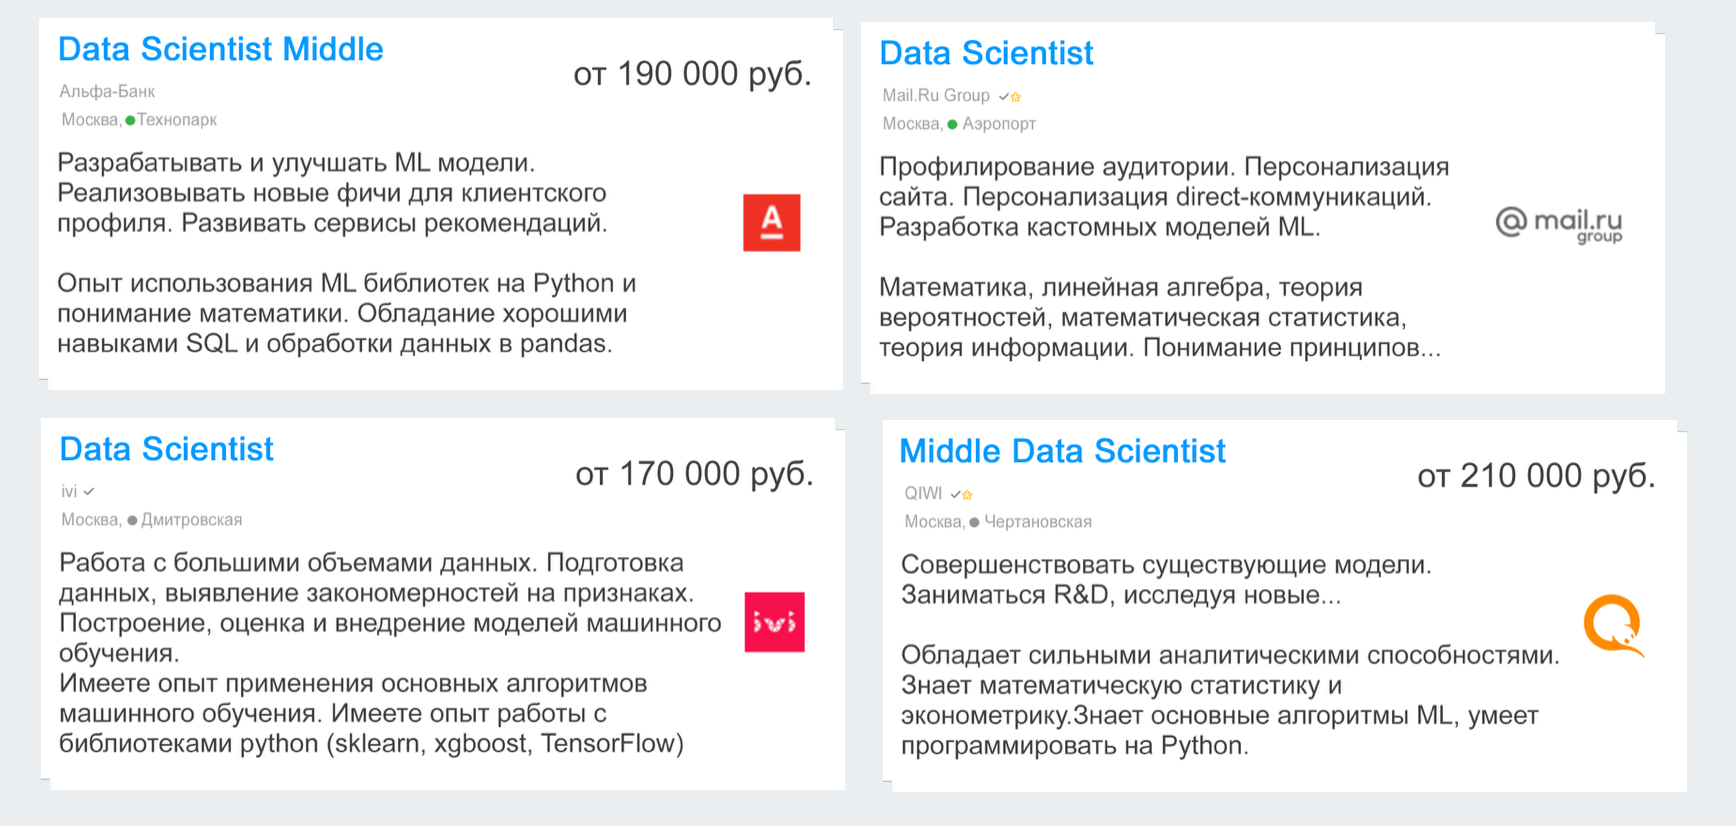 How to become an expert in Data Science?